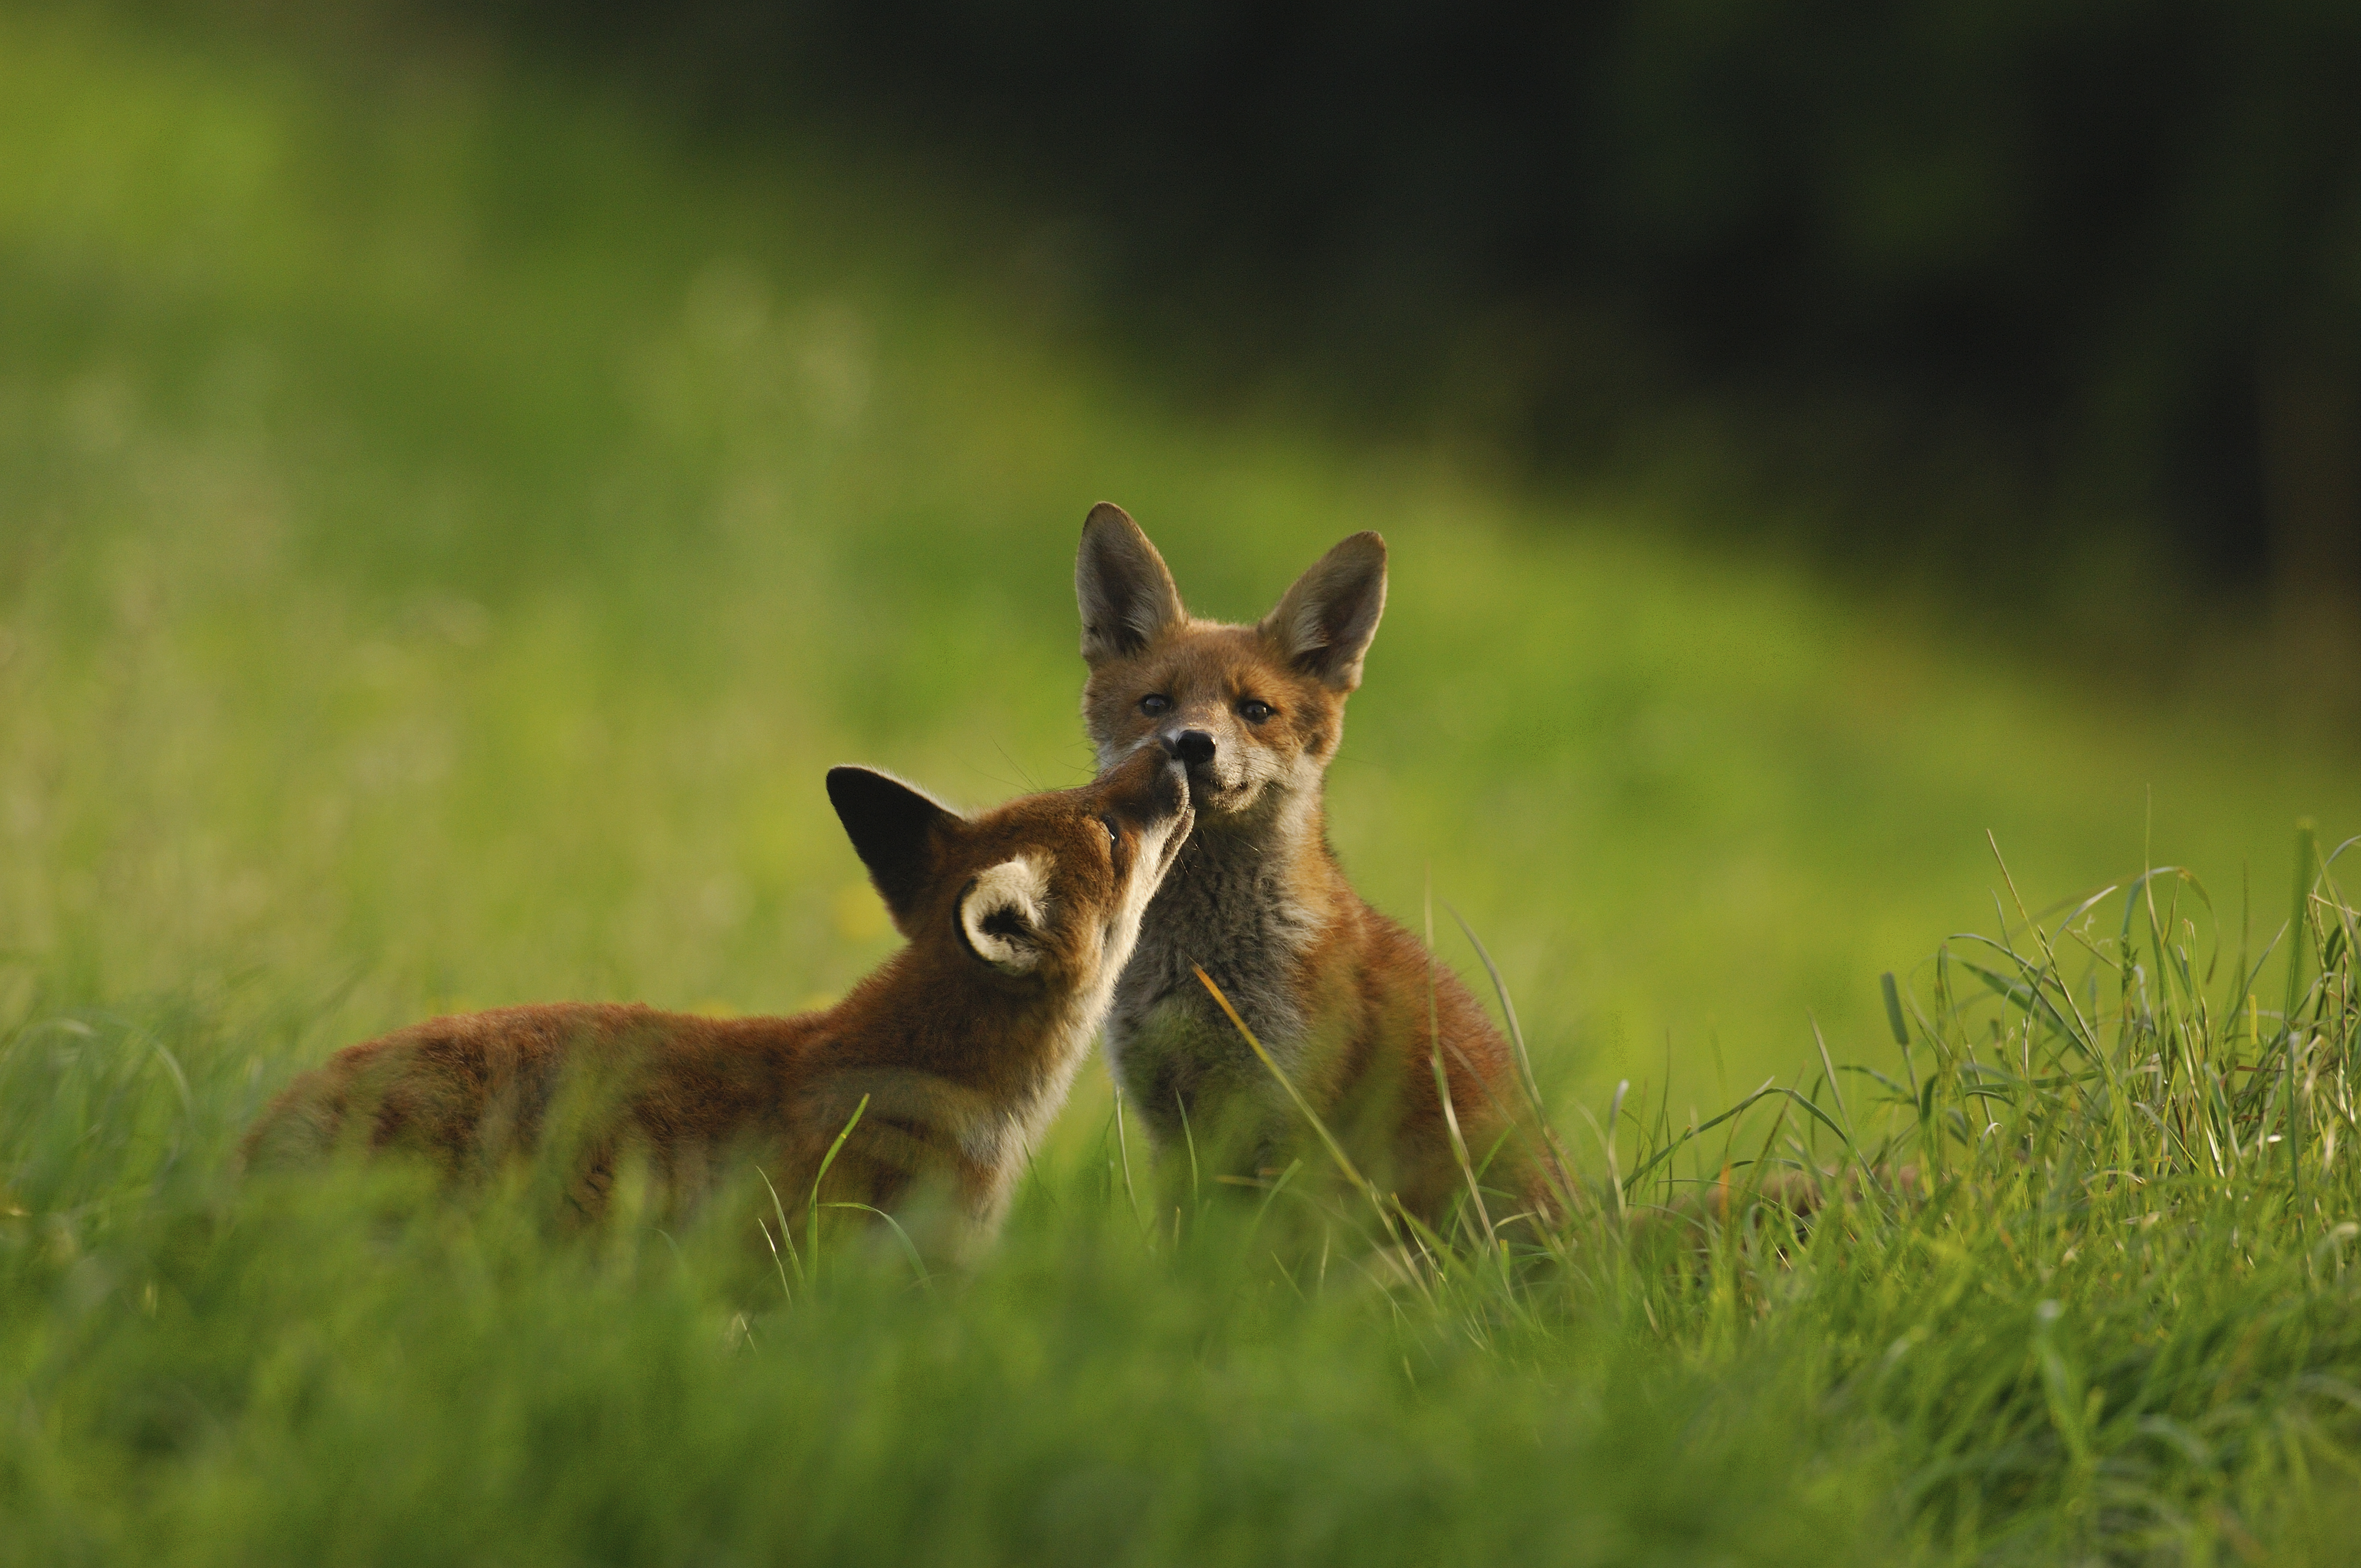 Two wild foxes playing in grass